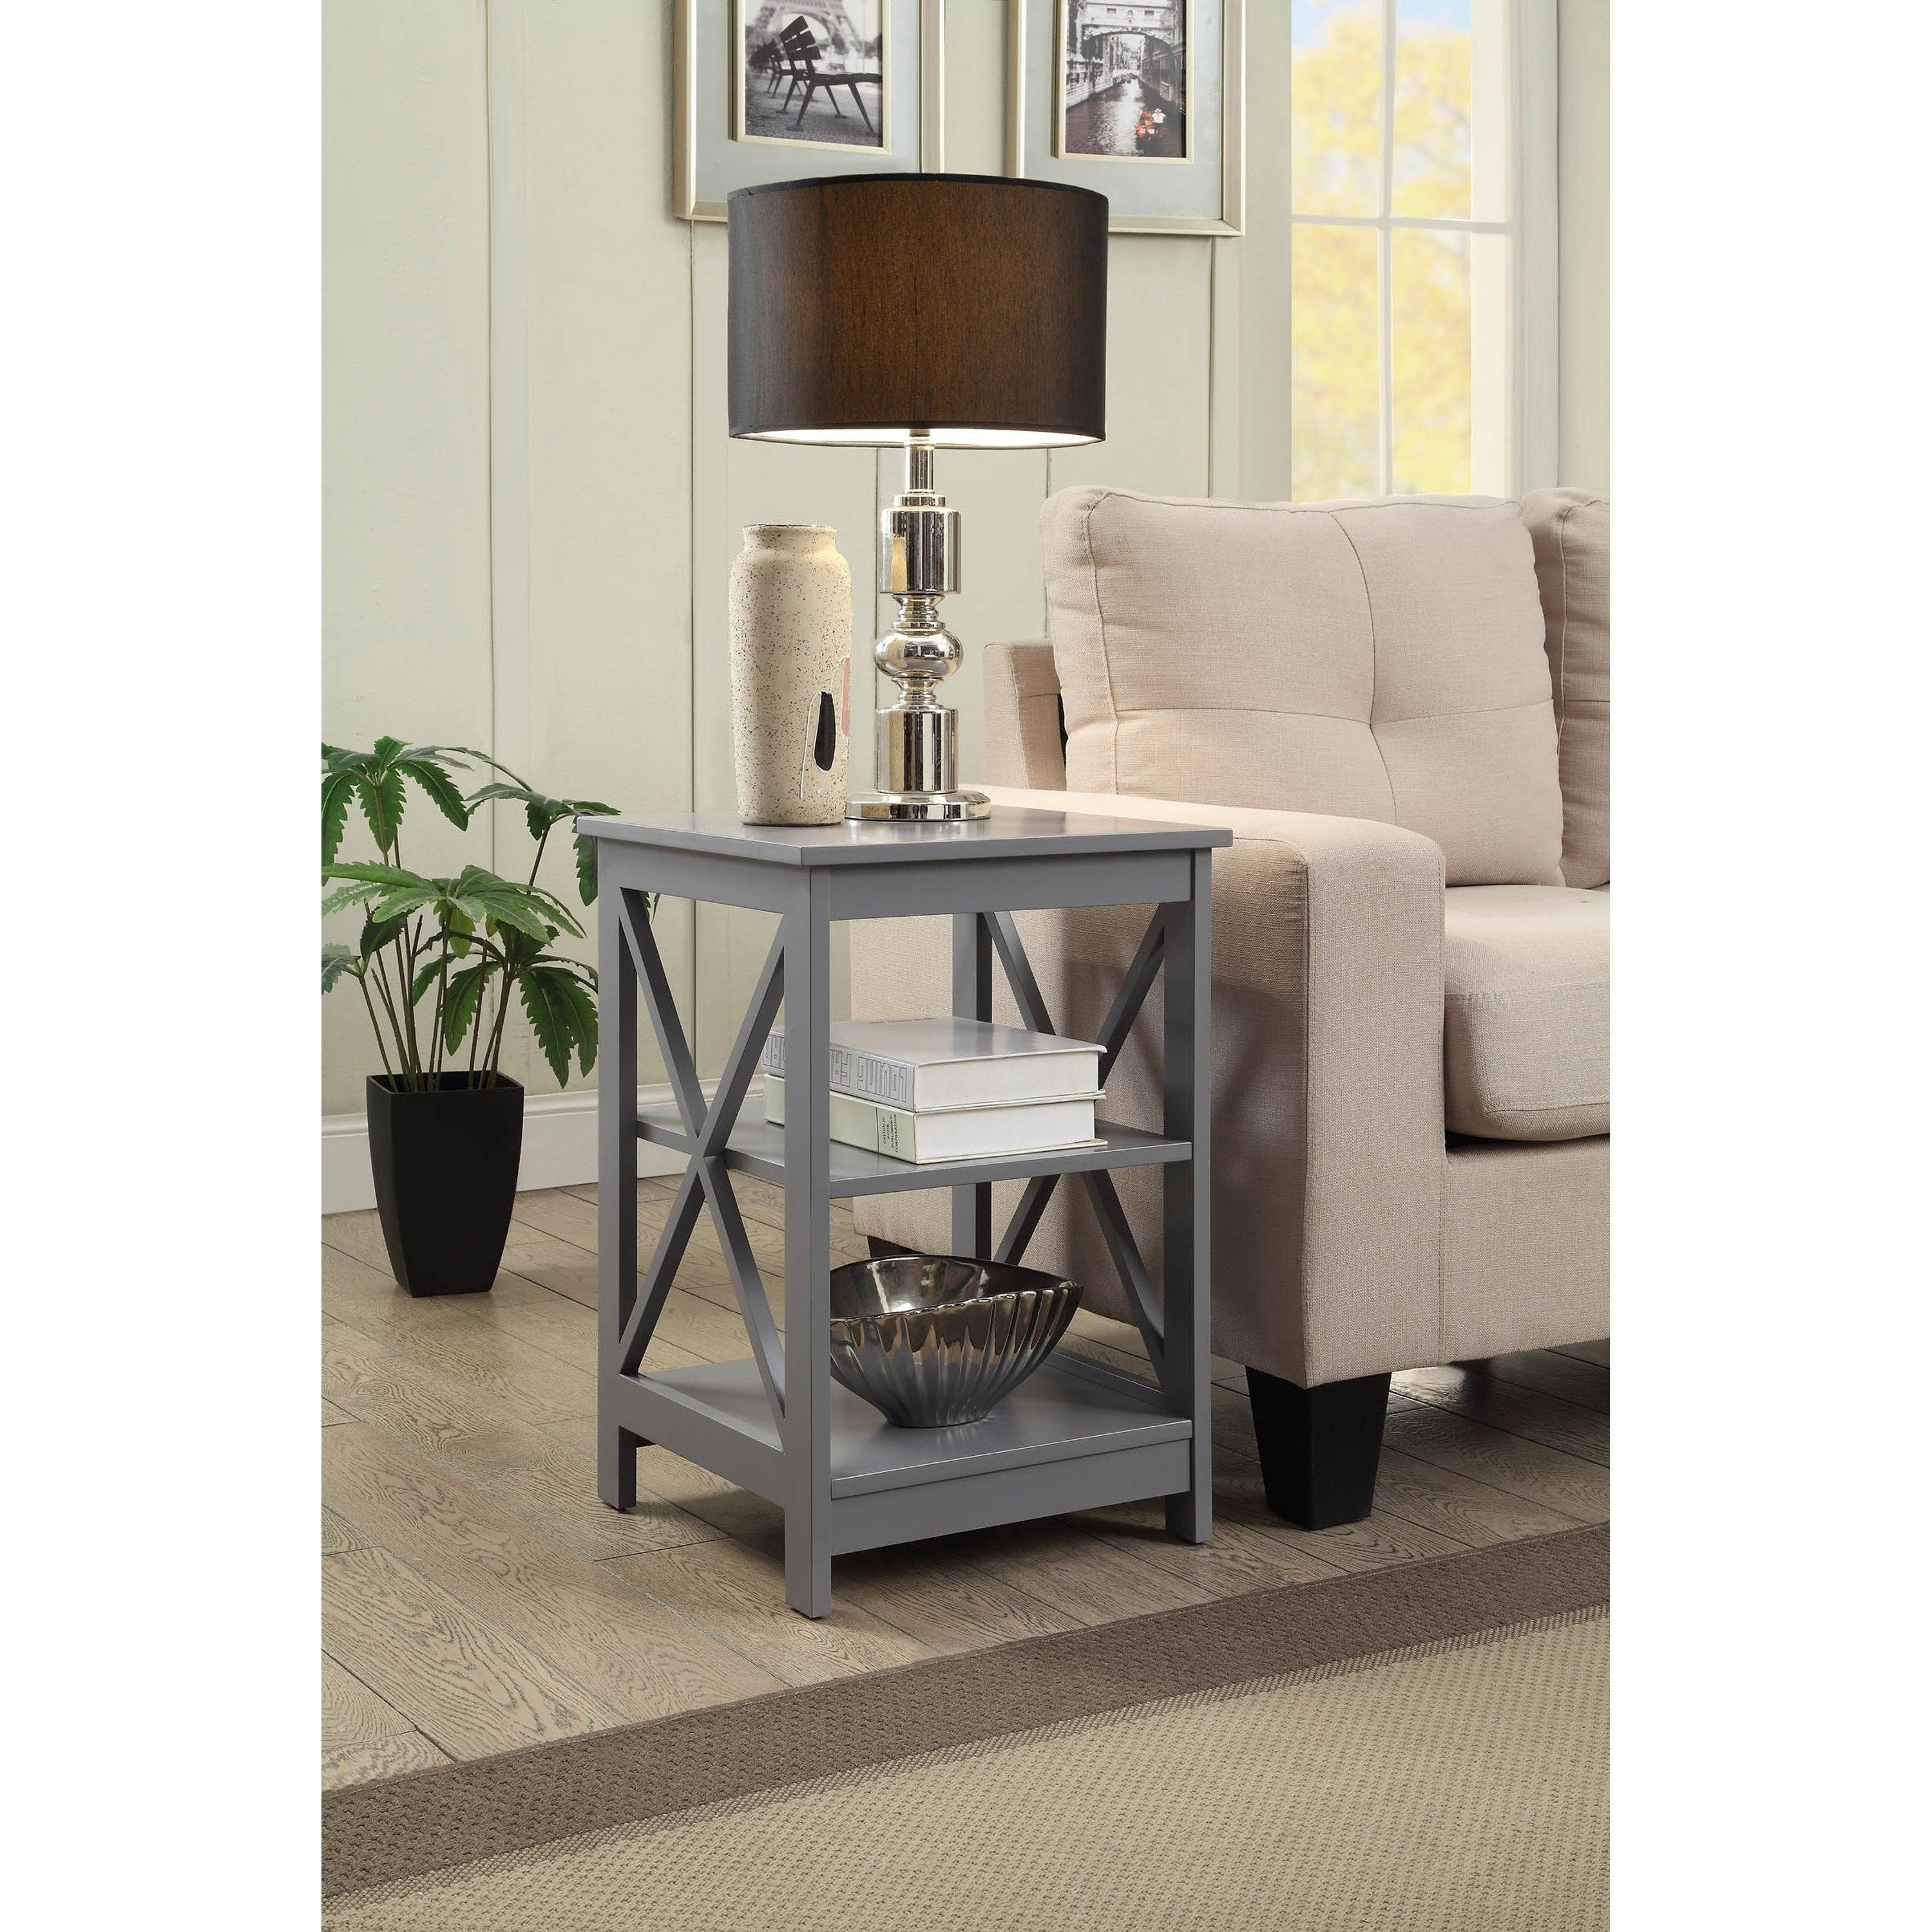 the gray barn pitchfork base end table black products accent grey terence conran furniture round glass top bedside tile and wood floor transition small oak tables nautical pendant